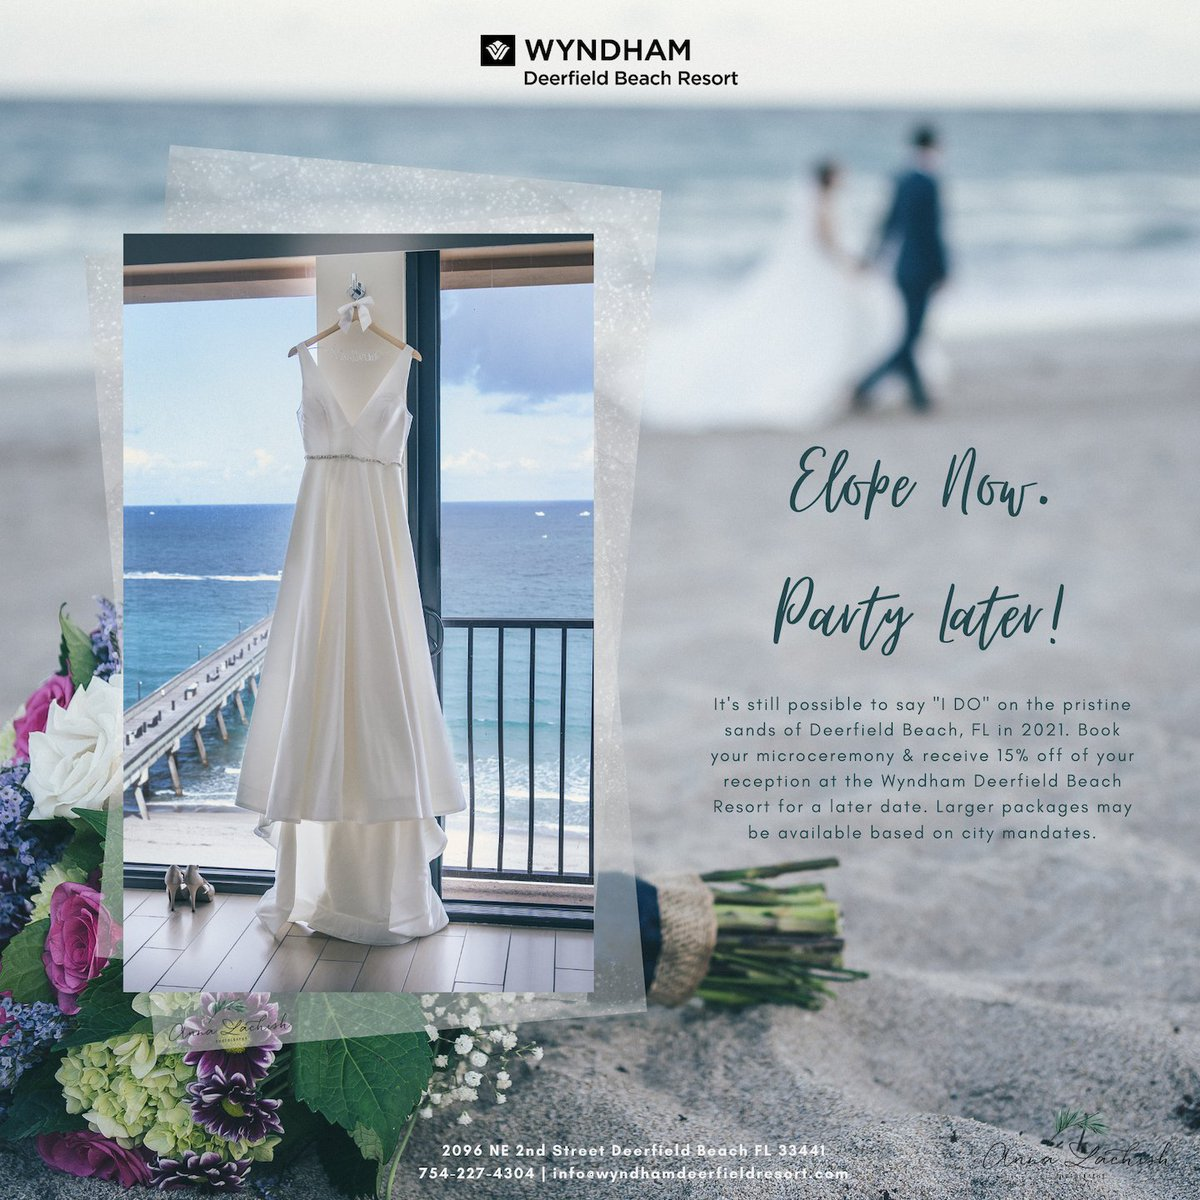 Elope now and party later! The Wyndham Deerfield Beach Resort is here to help you with your wedding needs. Book your microceremony and receive 15% off of your reception for a later date.   #wedding #elope #party #ceremony #beachwedding #destinationwedding #wyndham #florida #dfb